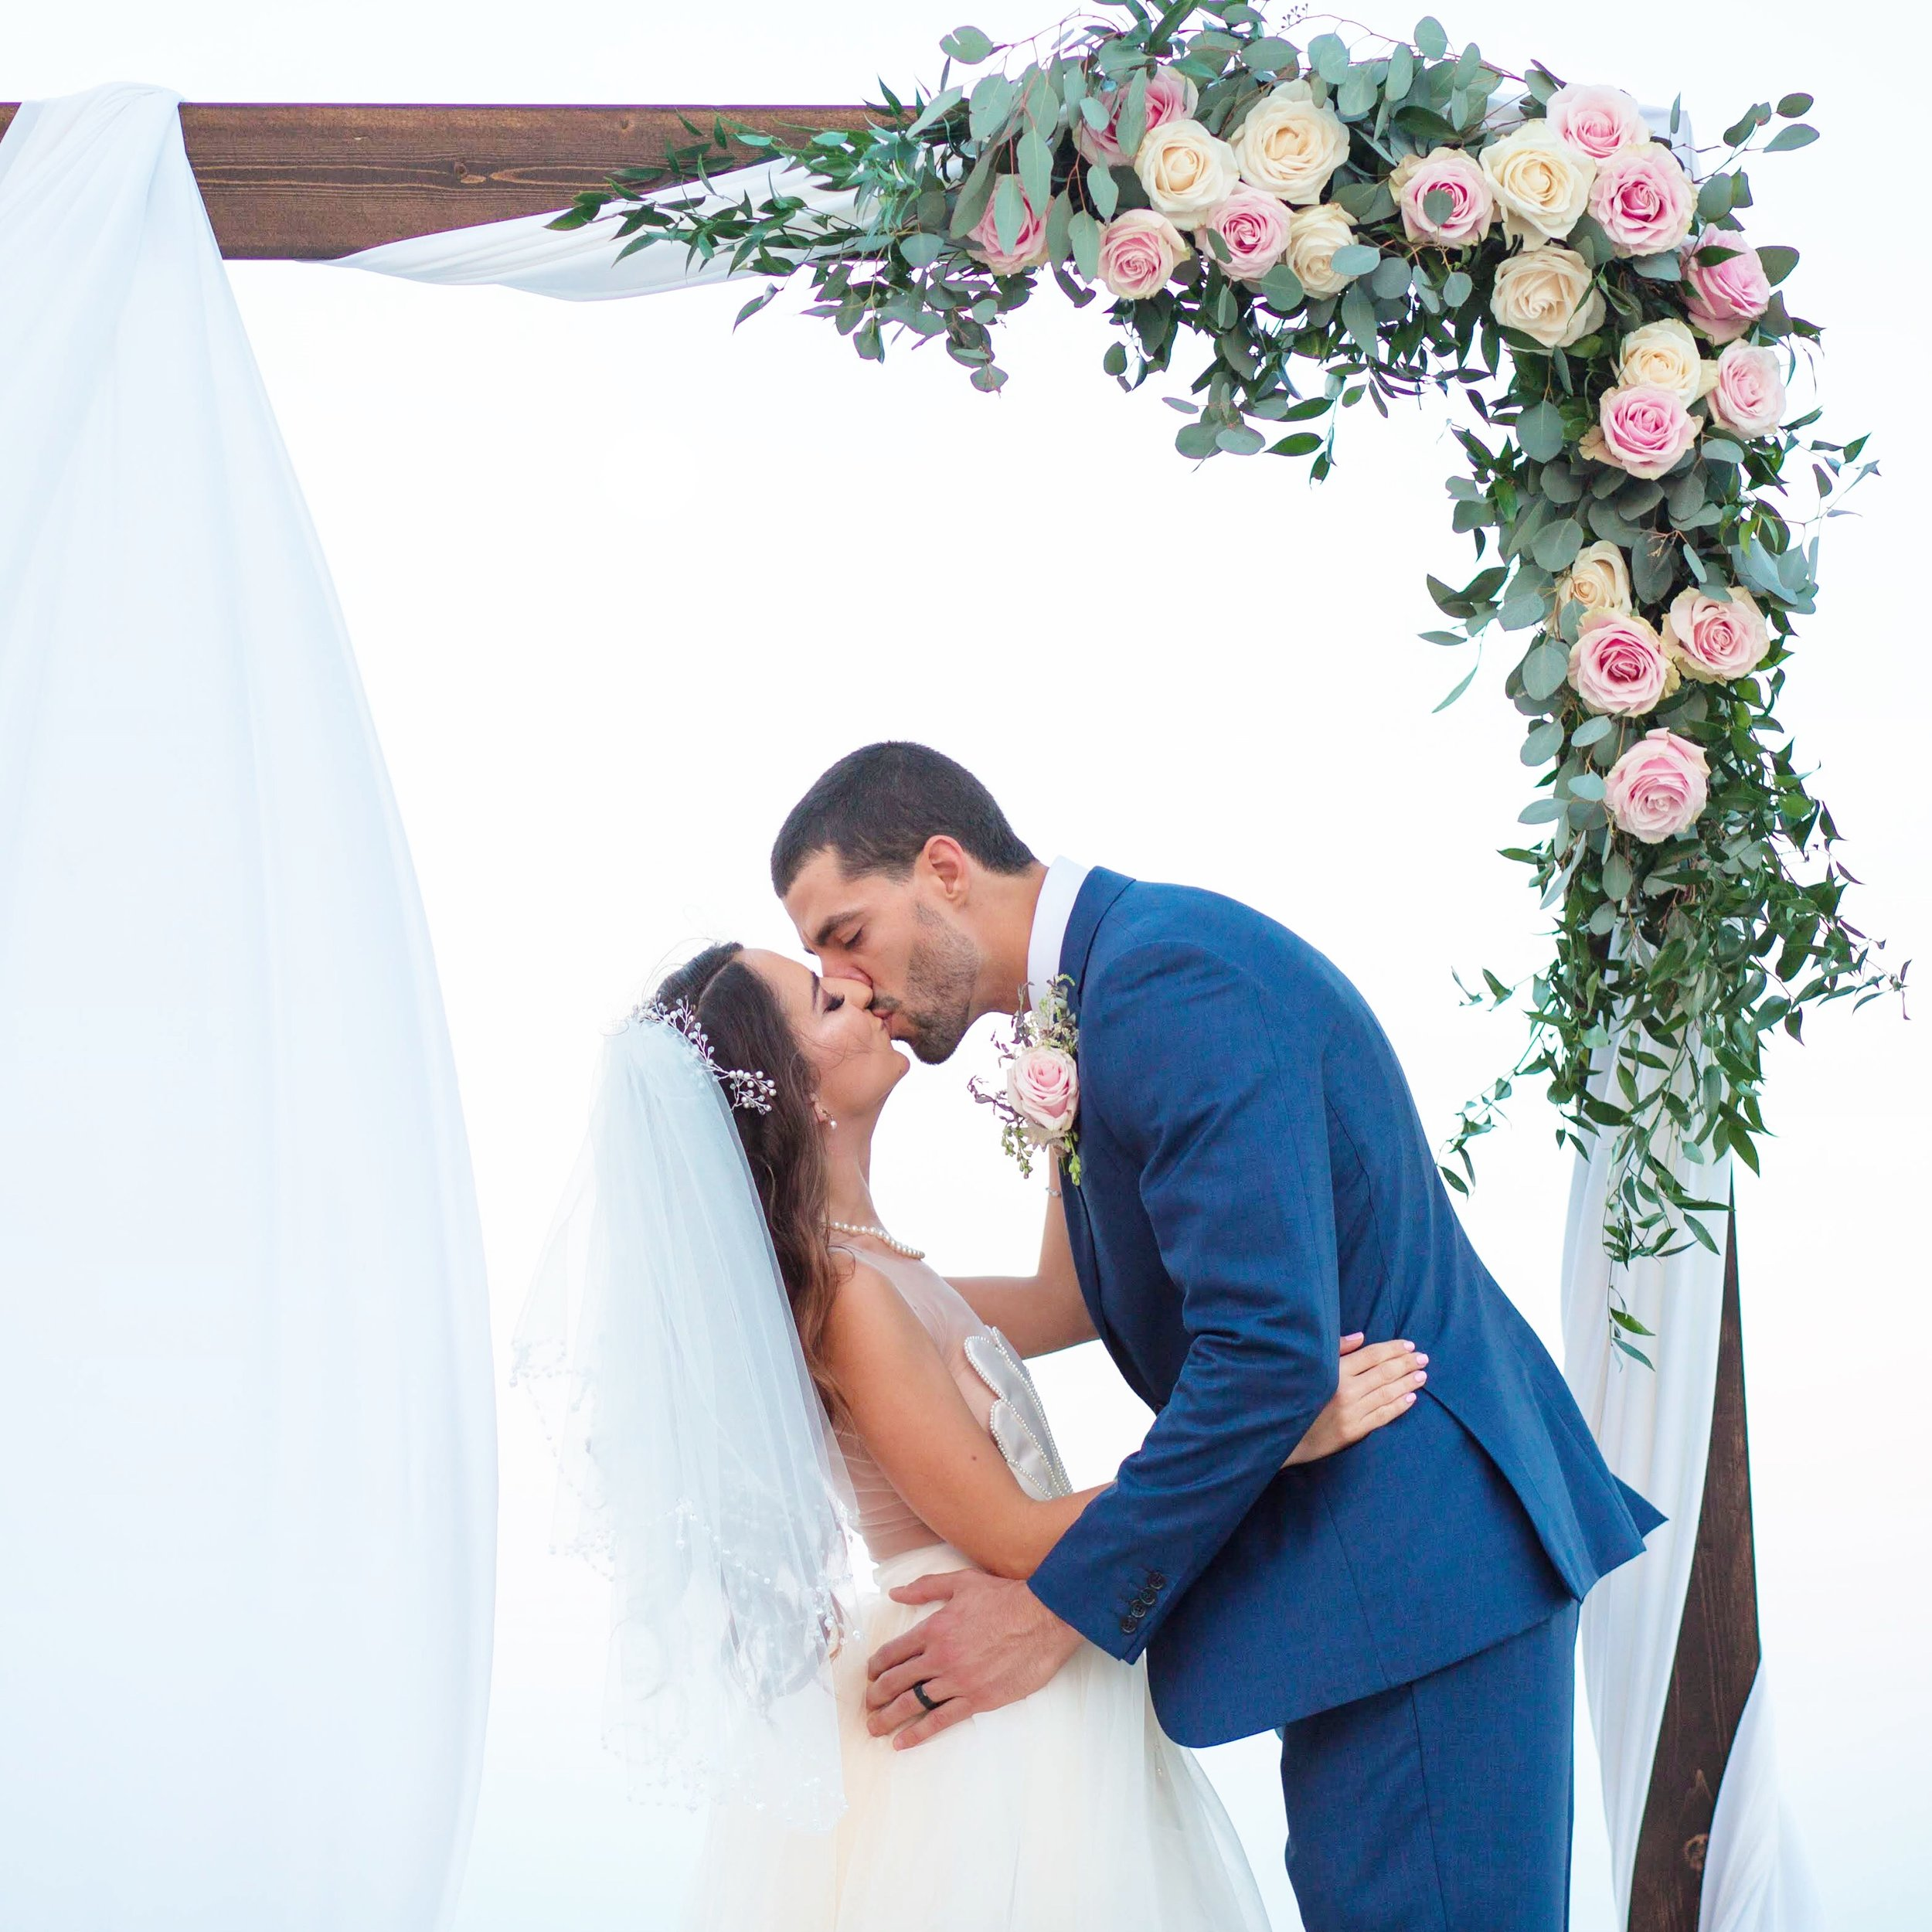 Whimsical wedding arch with lush flowers and greenery on the beach at Miami Beach